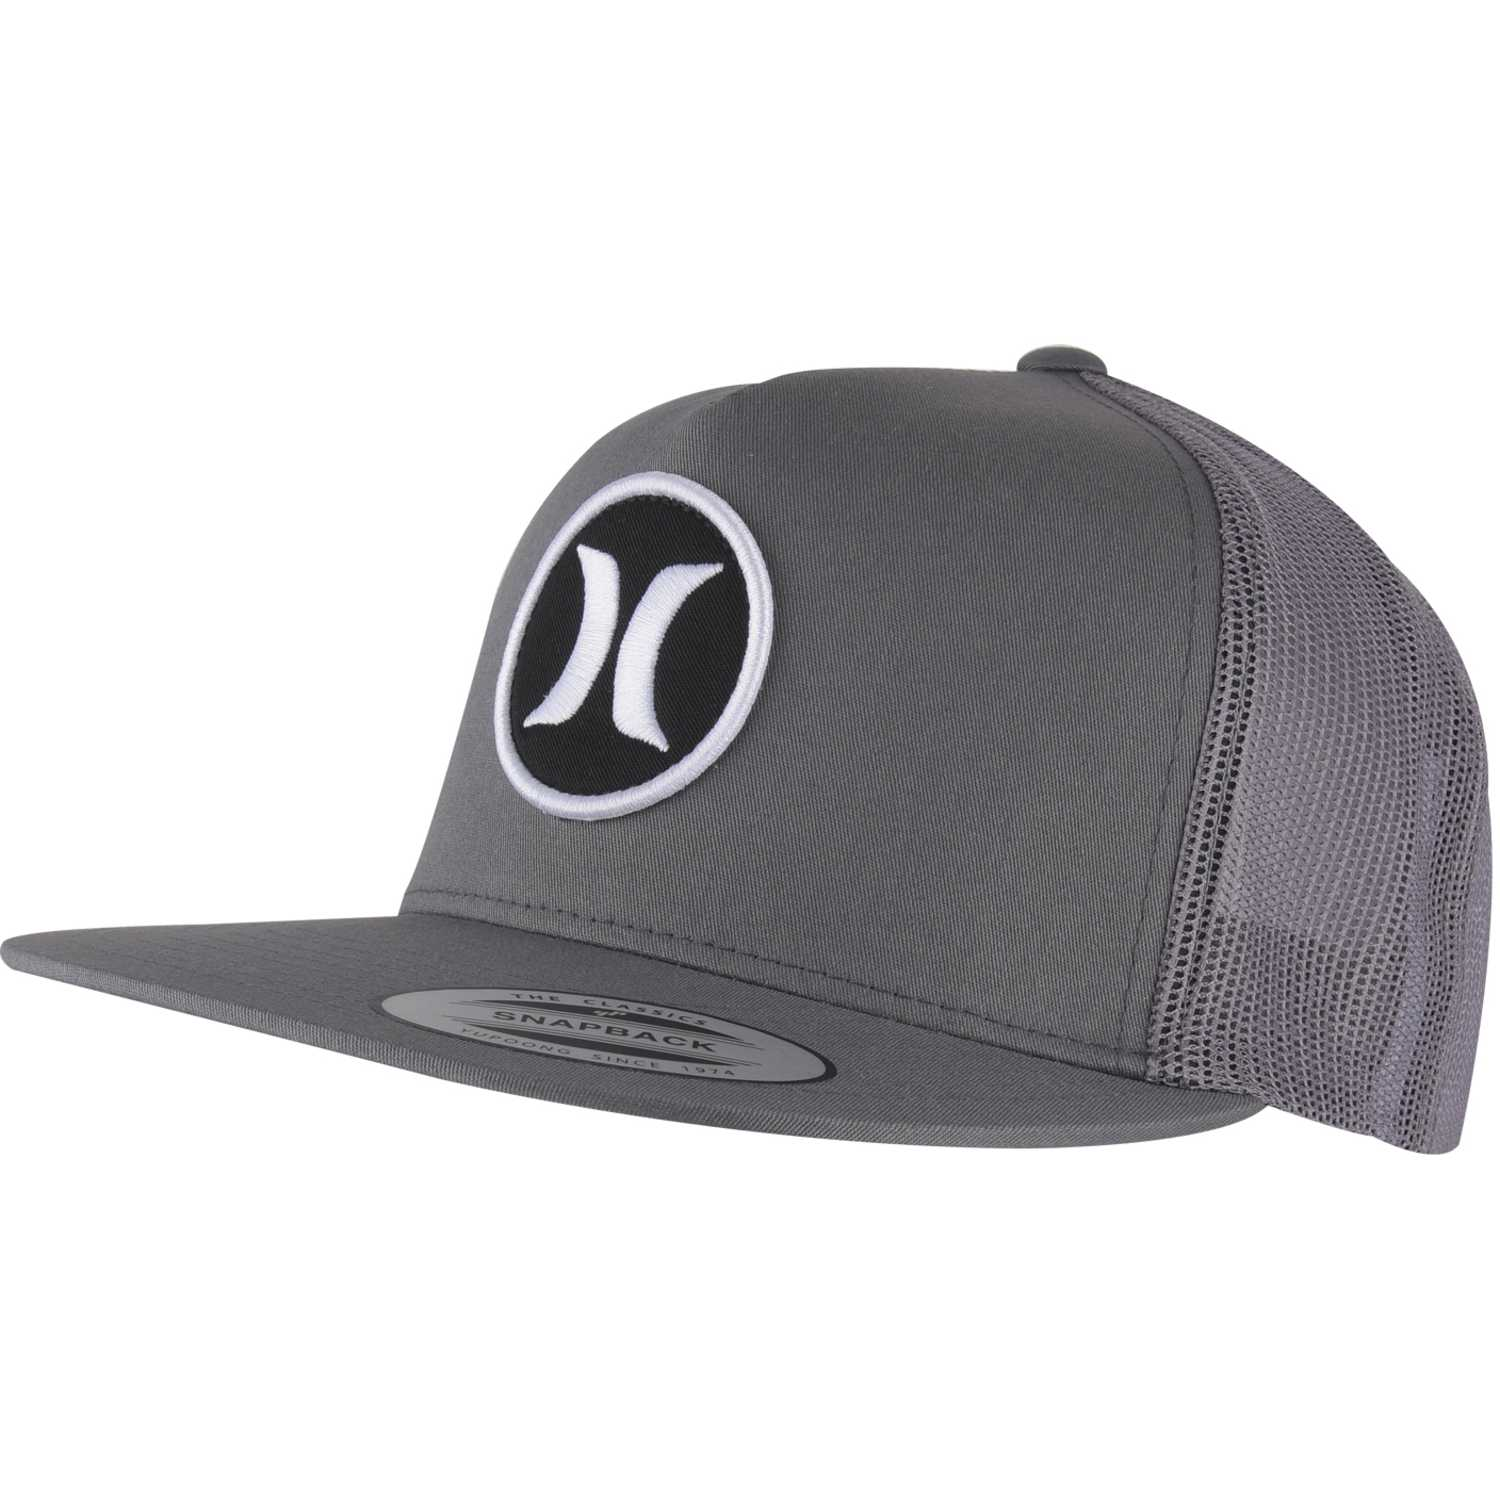 new product 039ae 29663 ... best price gorro de hombre hurley gris block party hats 6f4d8 abdd7